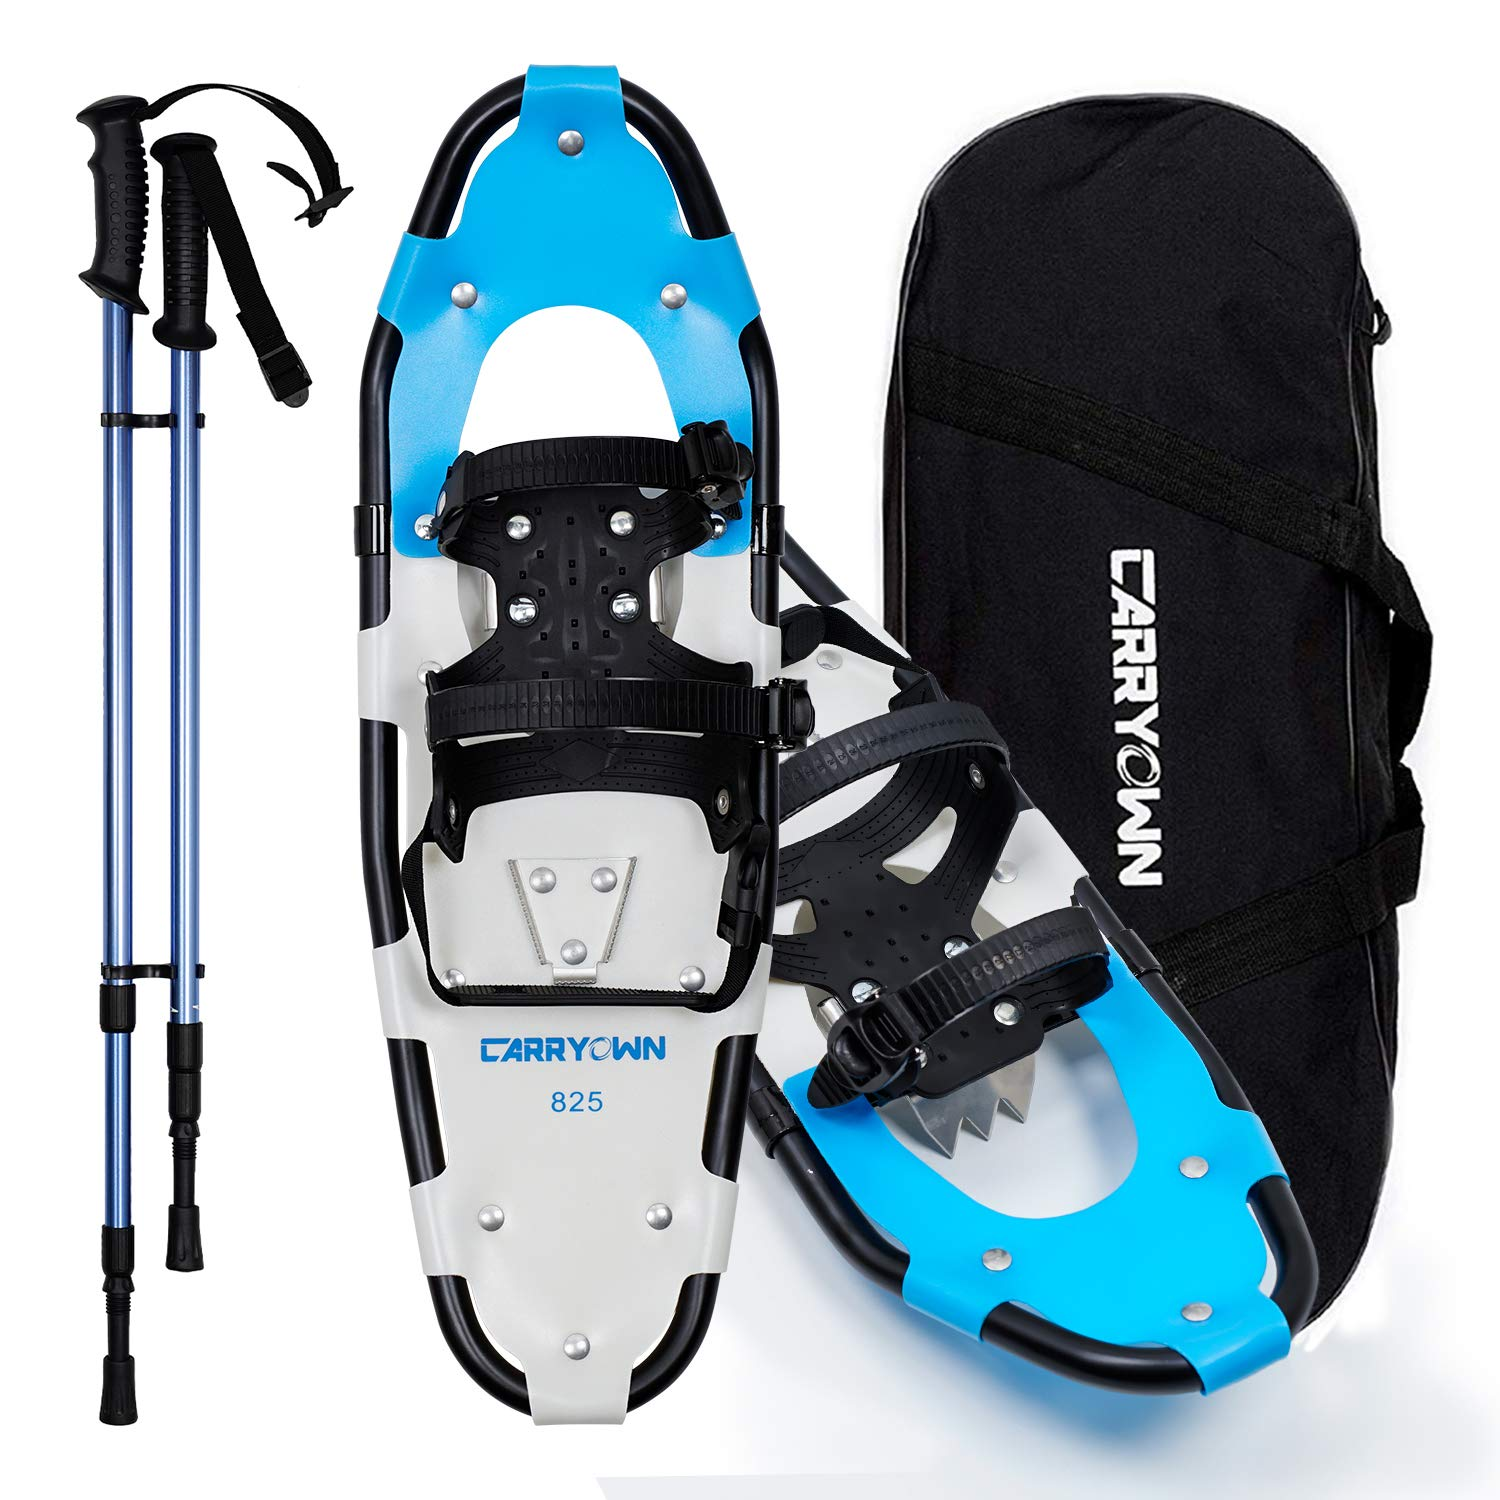 """Carryown Xtreme Light Weight Snowshoes Set for Adults Men Women Youth Kids, Aluminum Alloy Terrain Snow Shoes with Trekking Poles and Carrying Tote Bag, 14"""" /21""""/ 25""""/ 30"""""""